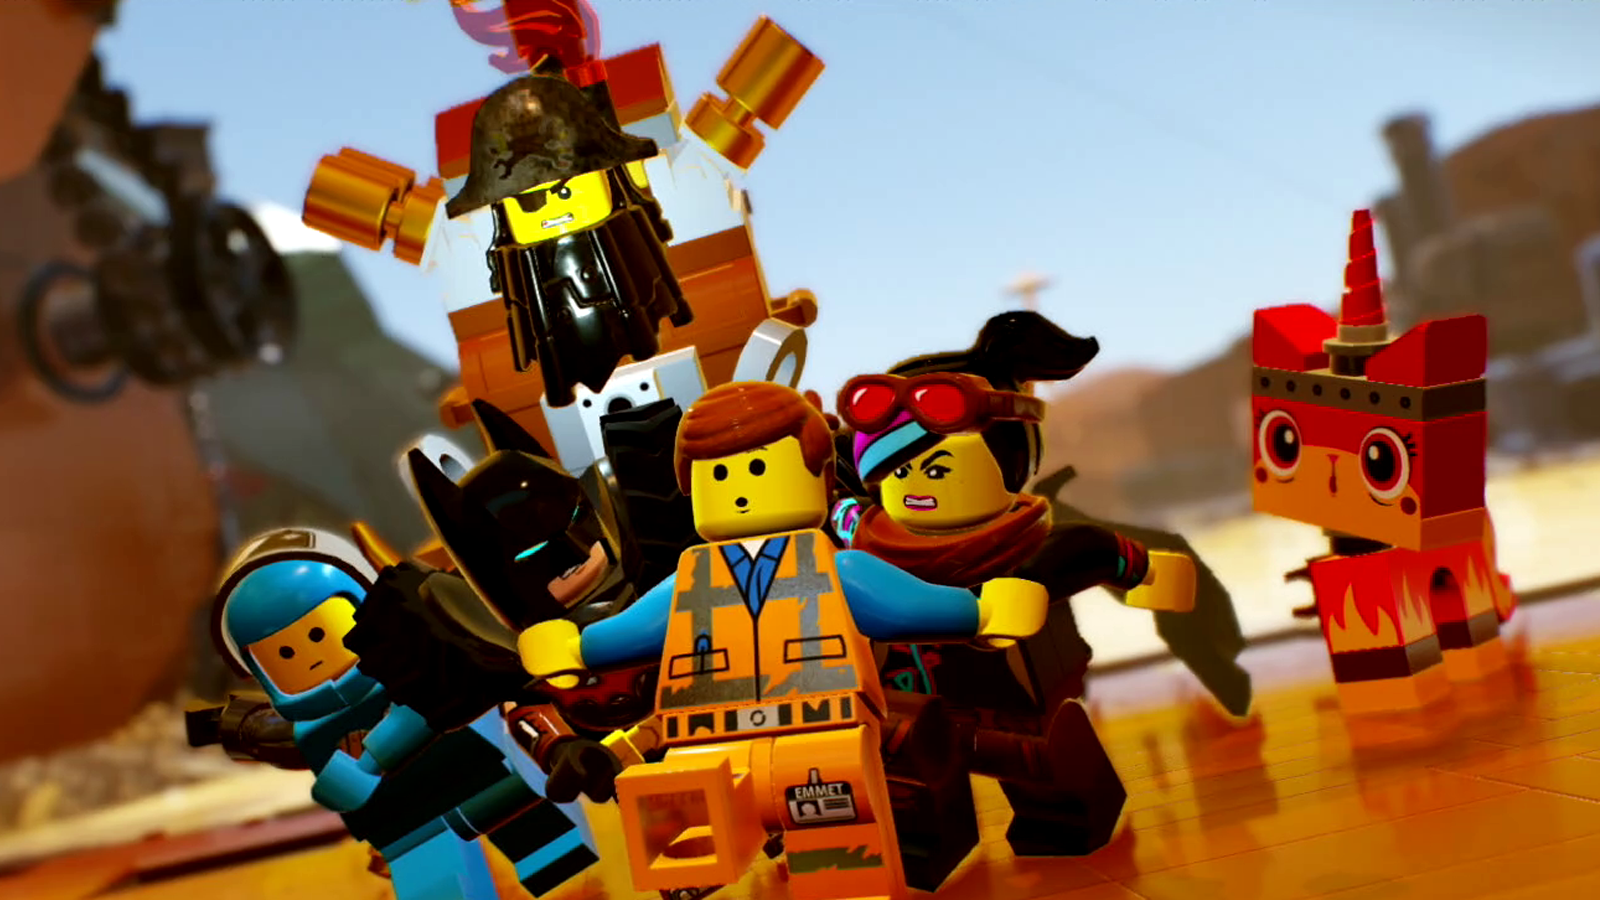 The Lego Movie 2 Videogame Hands On Impressions Gamewatcher